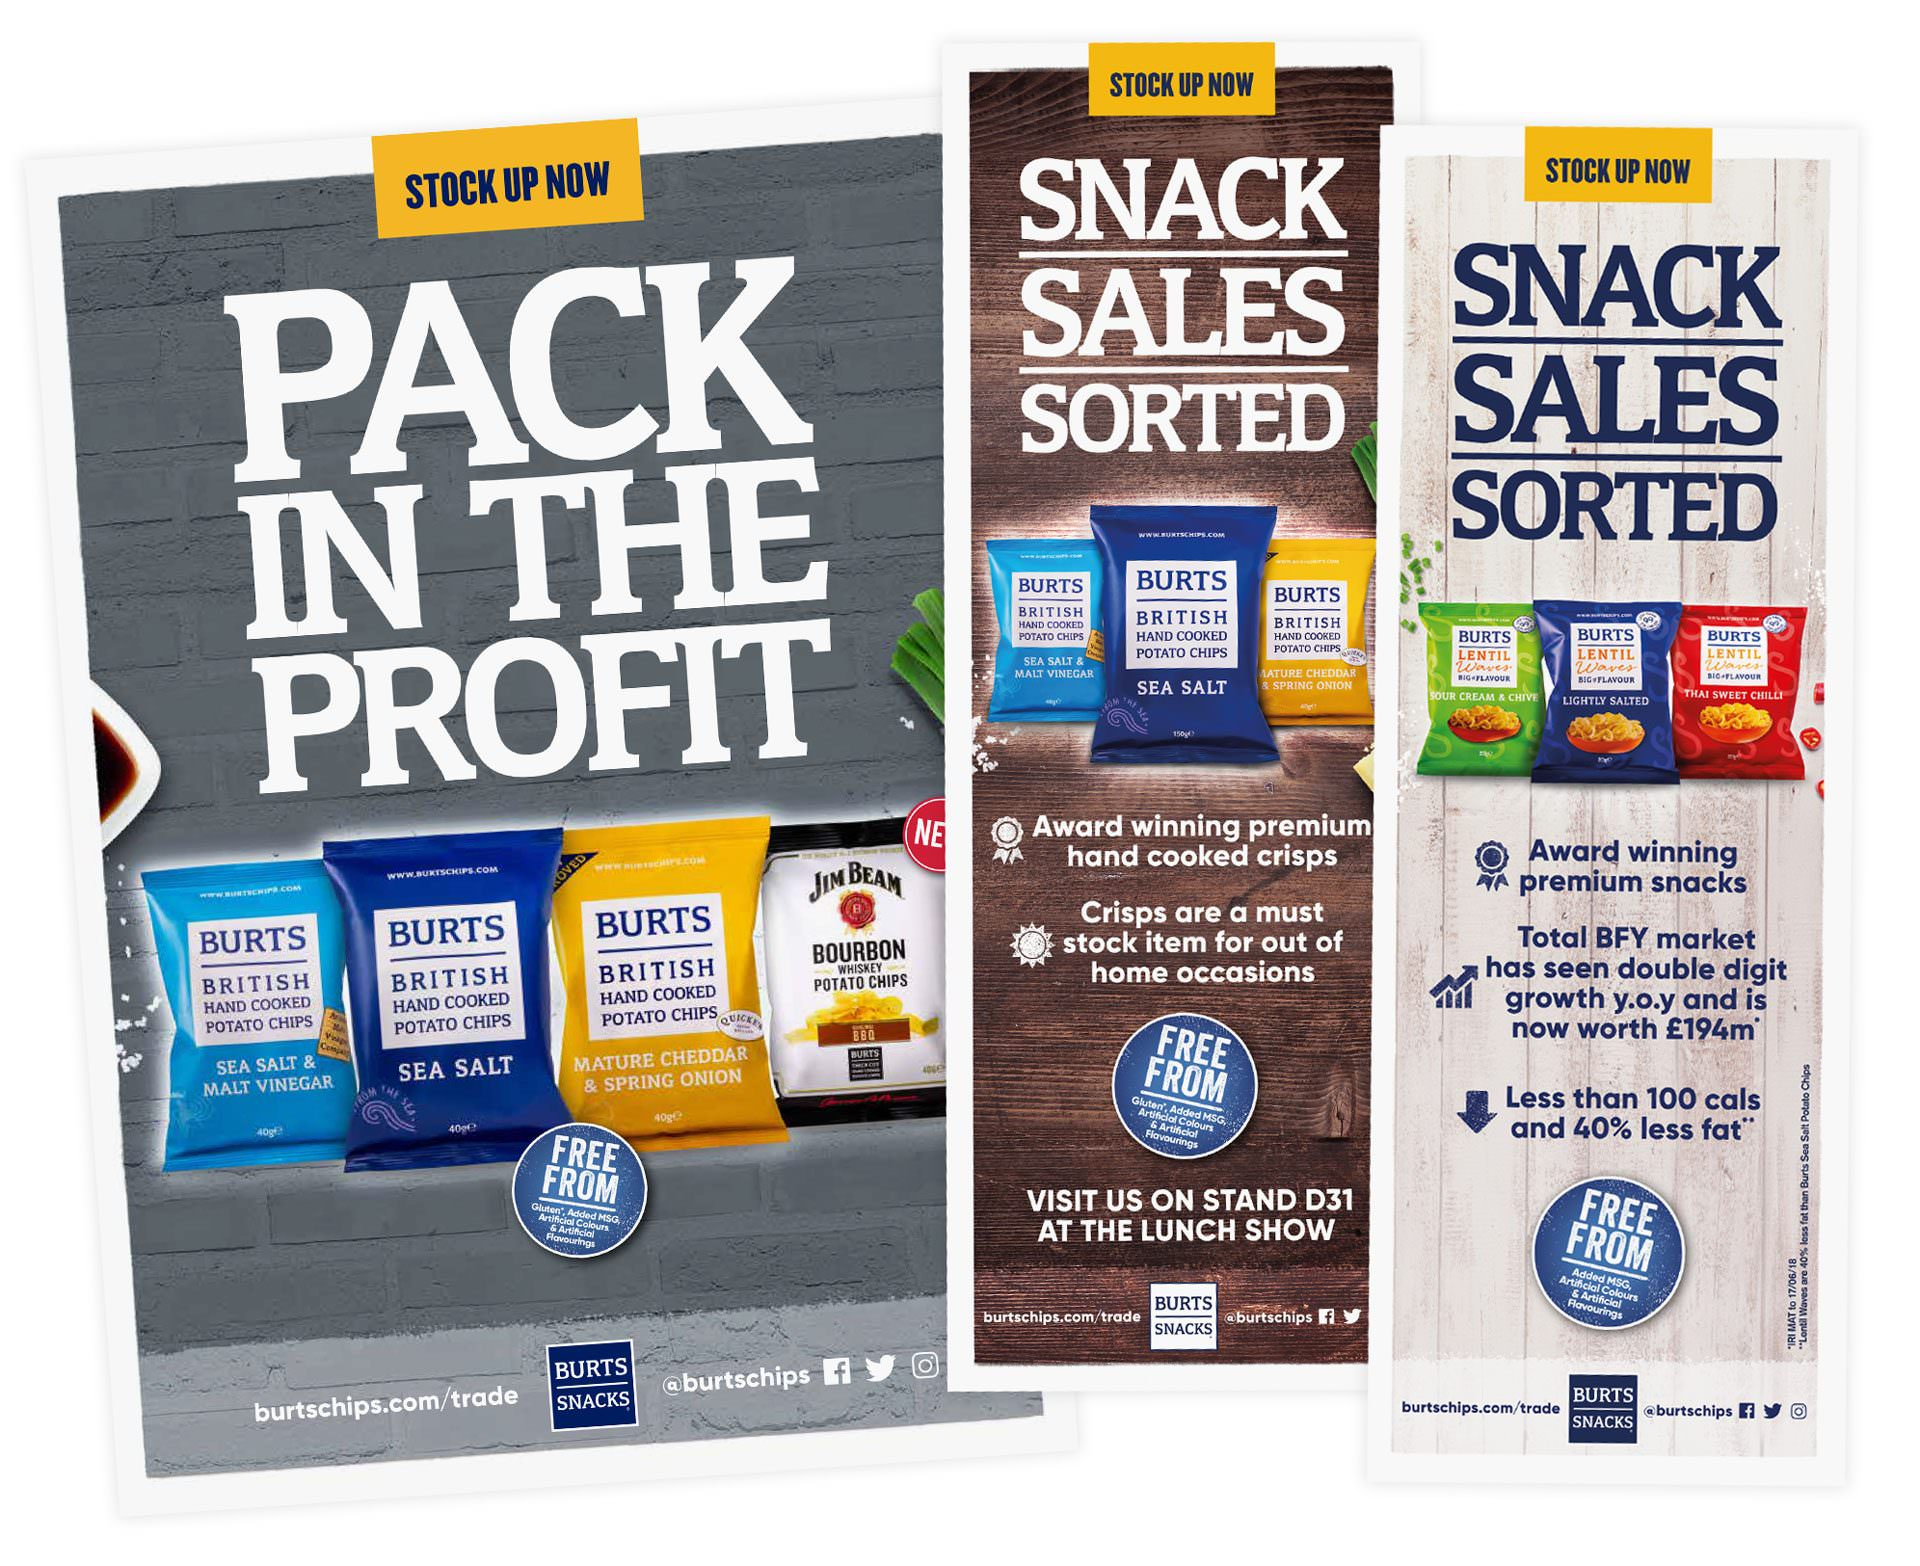 burts snacks trade adverts